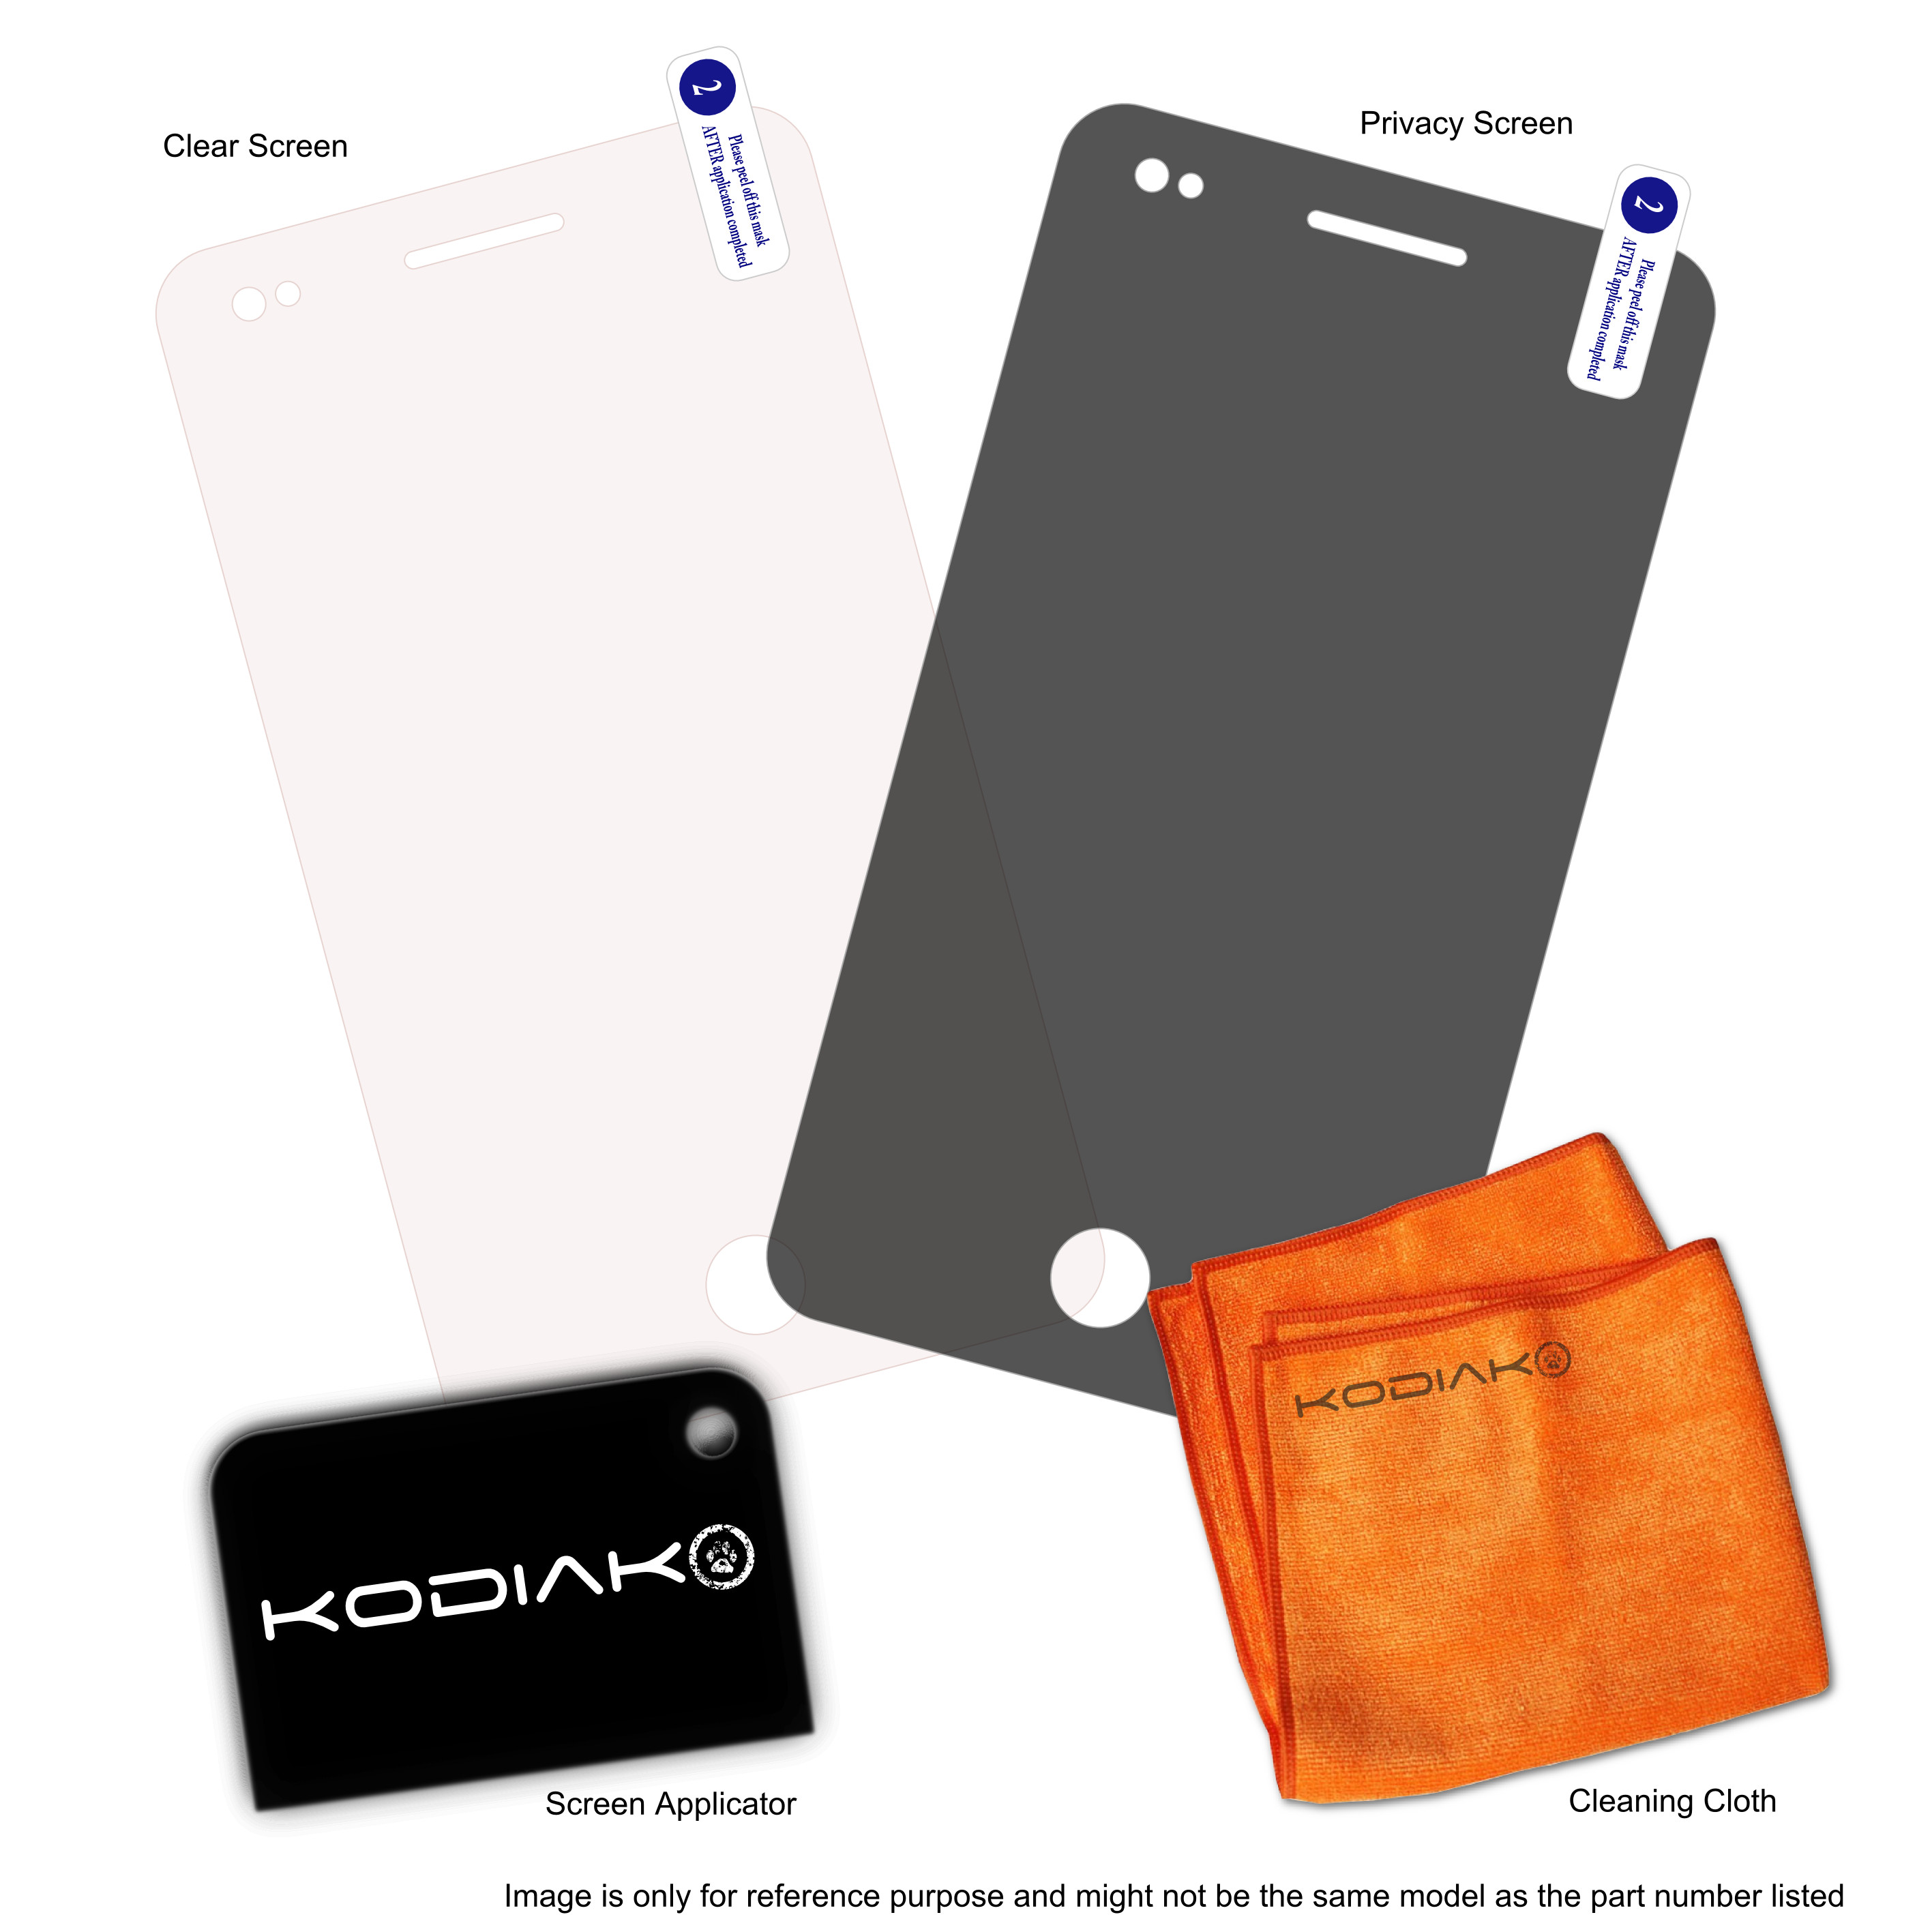 original-kodiak-screen-protector-sony-ericsson-xperia-x8-iprotect-2-package-clear-privacy